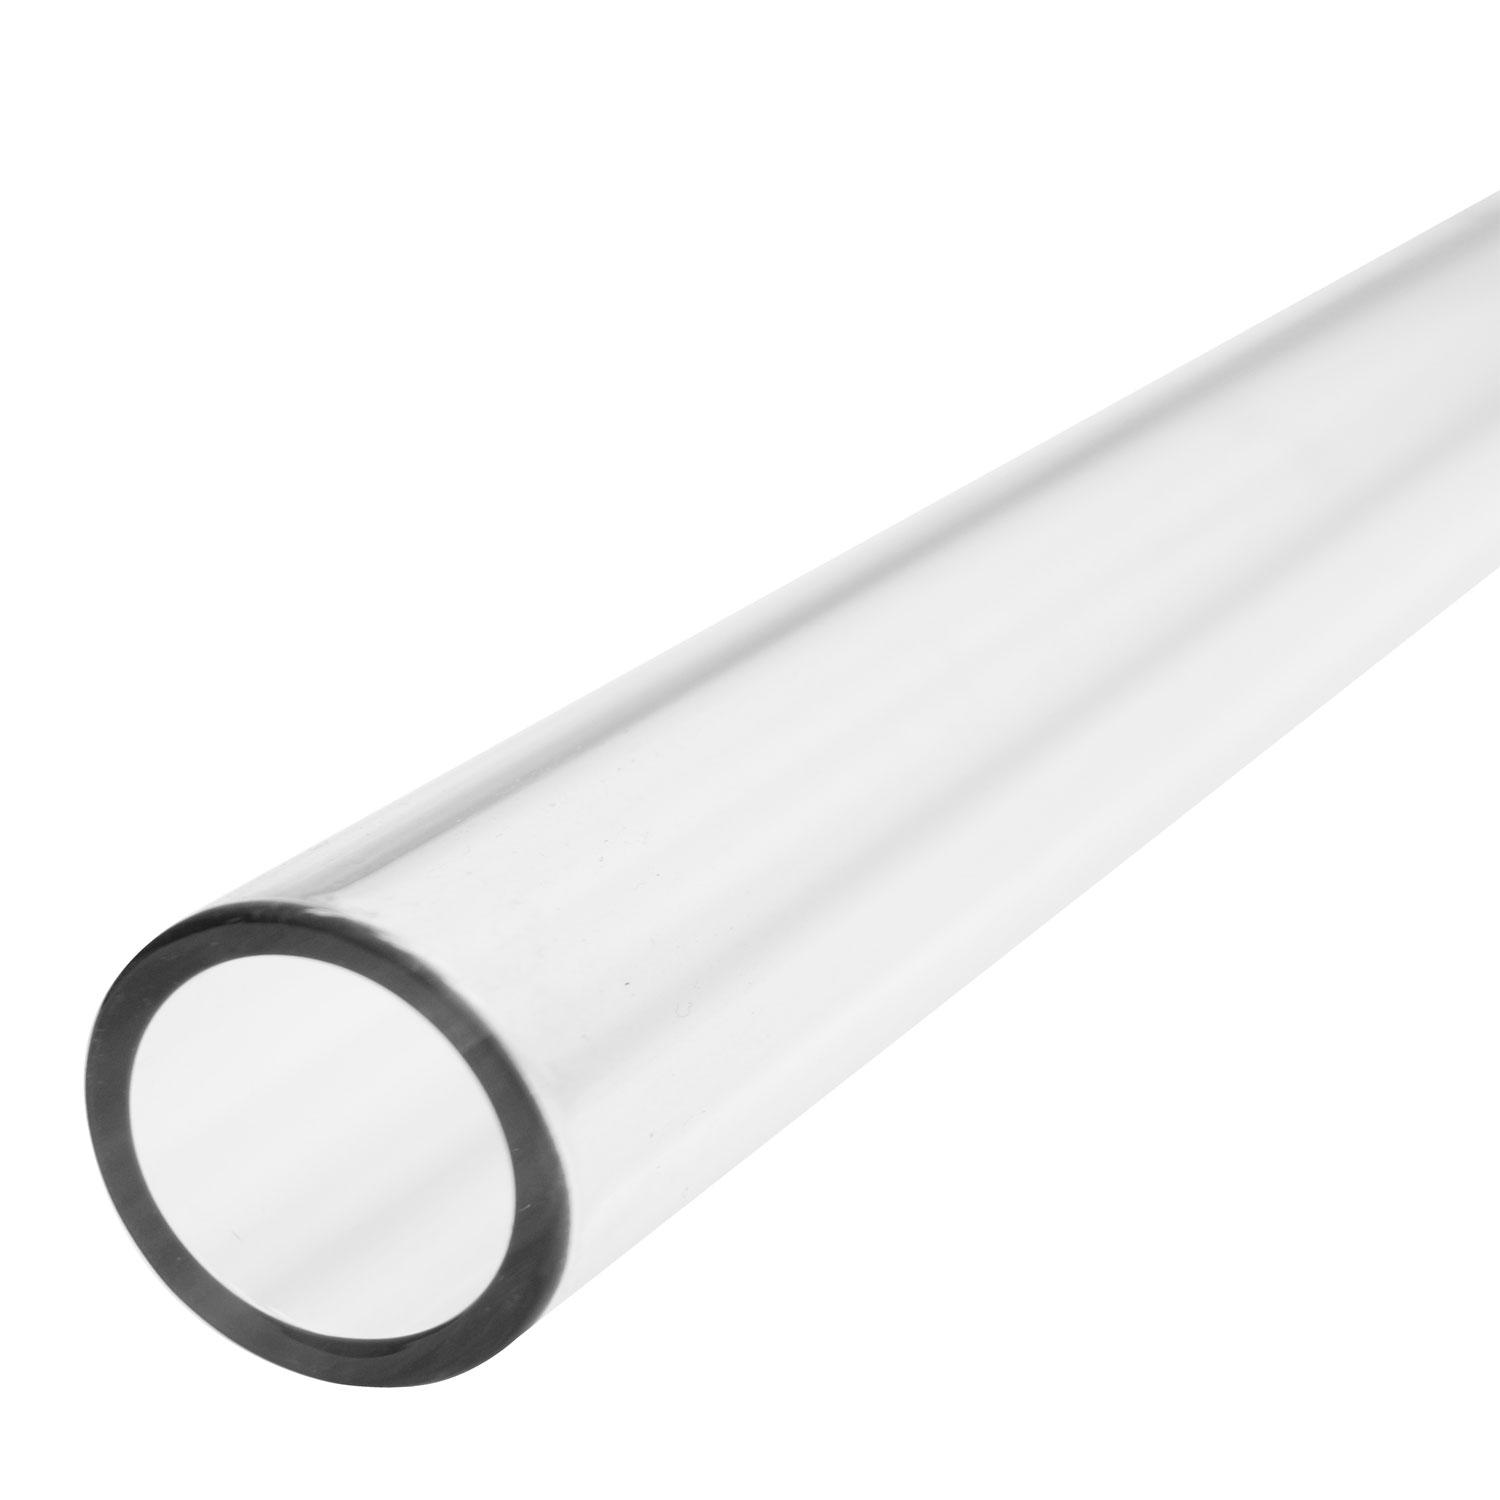 25.4mm Clear Simax Tube, 4mm Wall - 33 COE